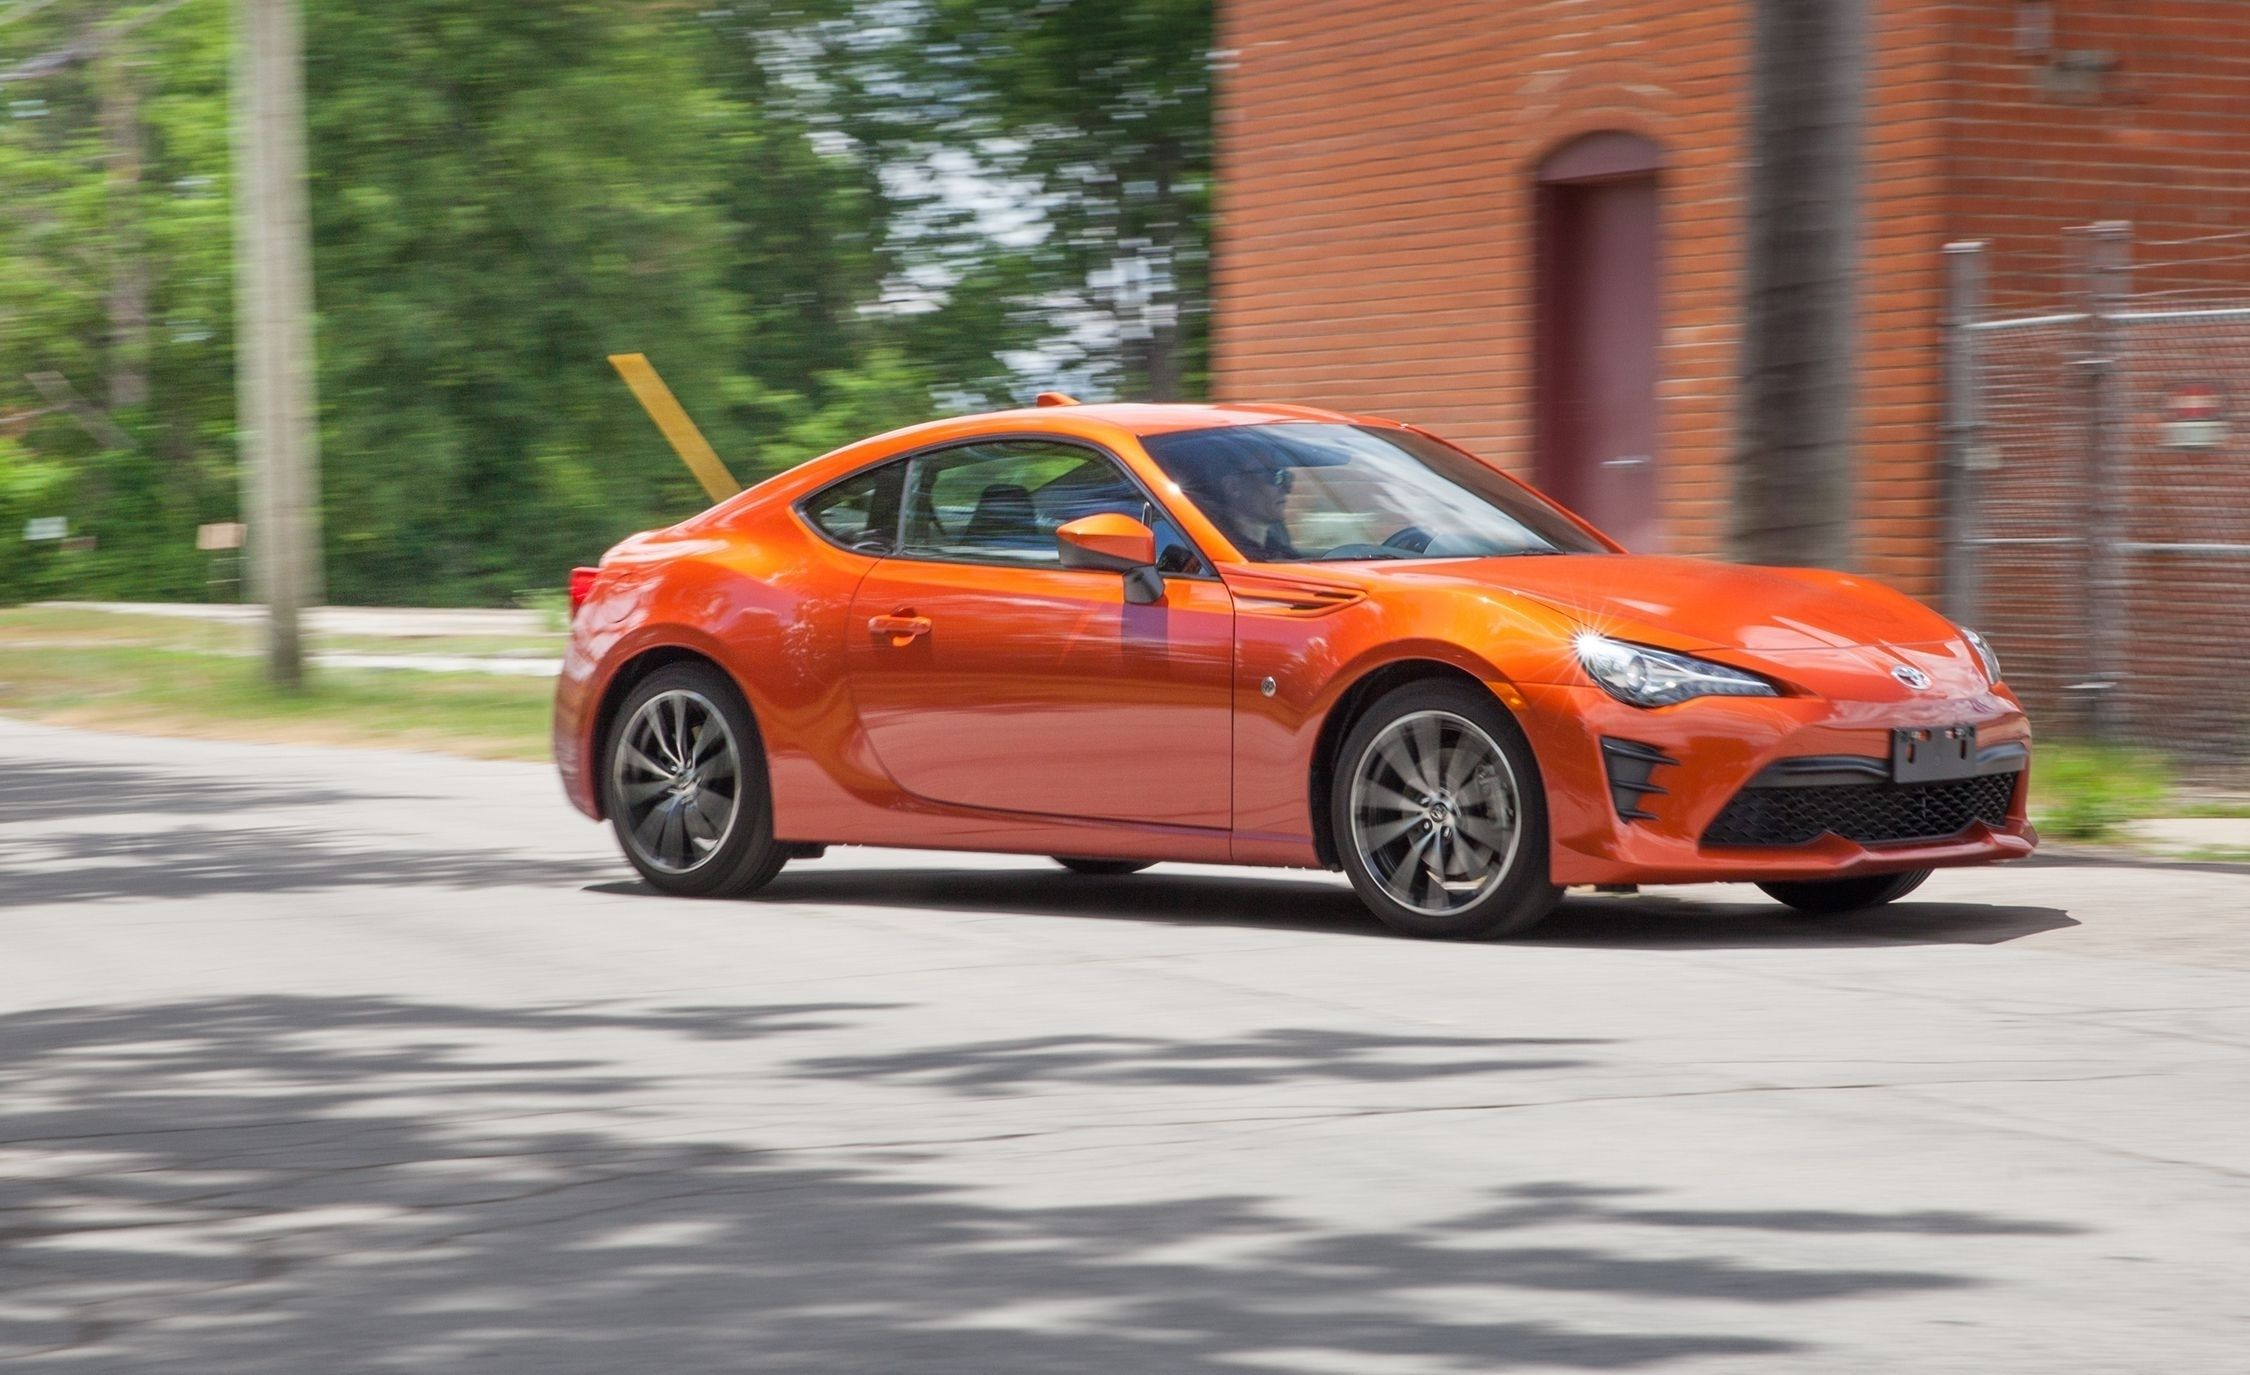 2019 Subaru Brz 0 60 Price And Release Date Car Performance